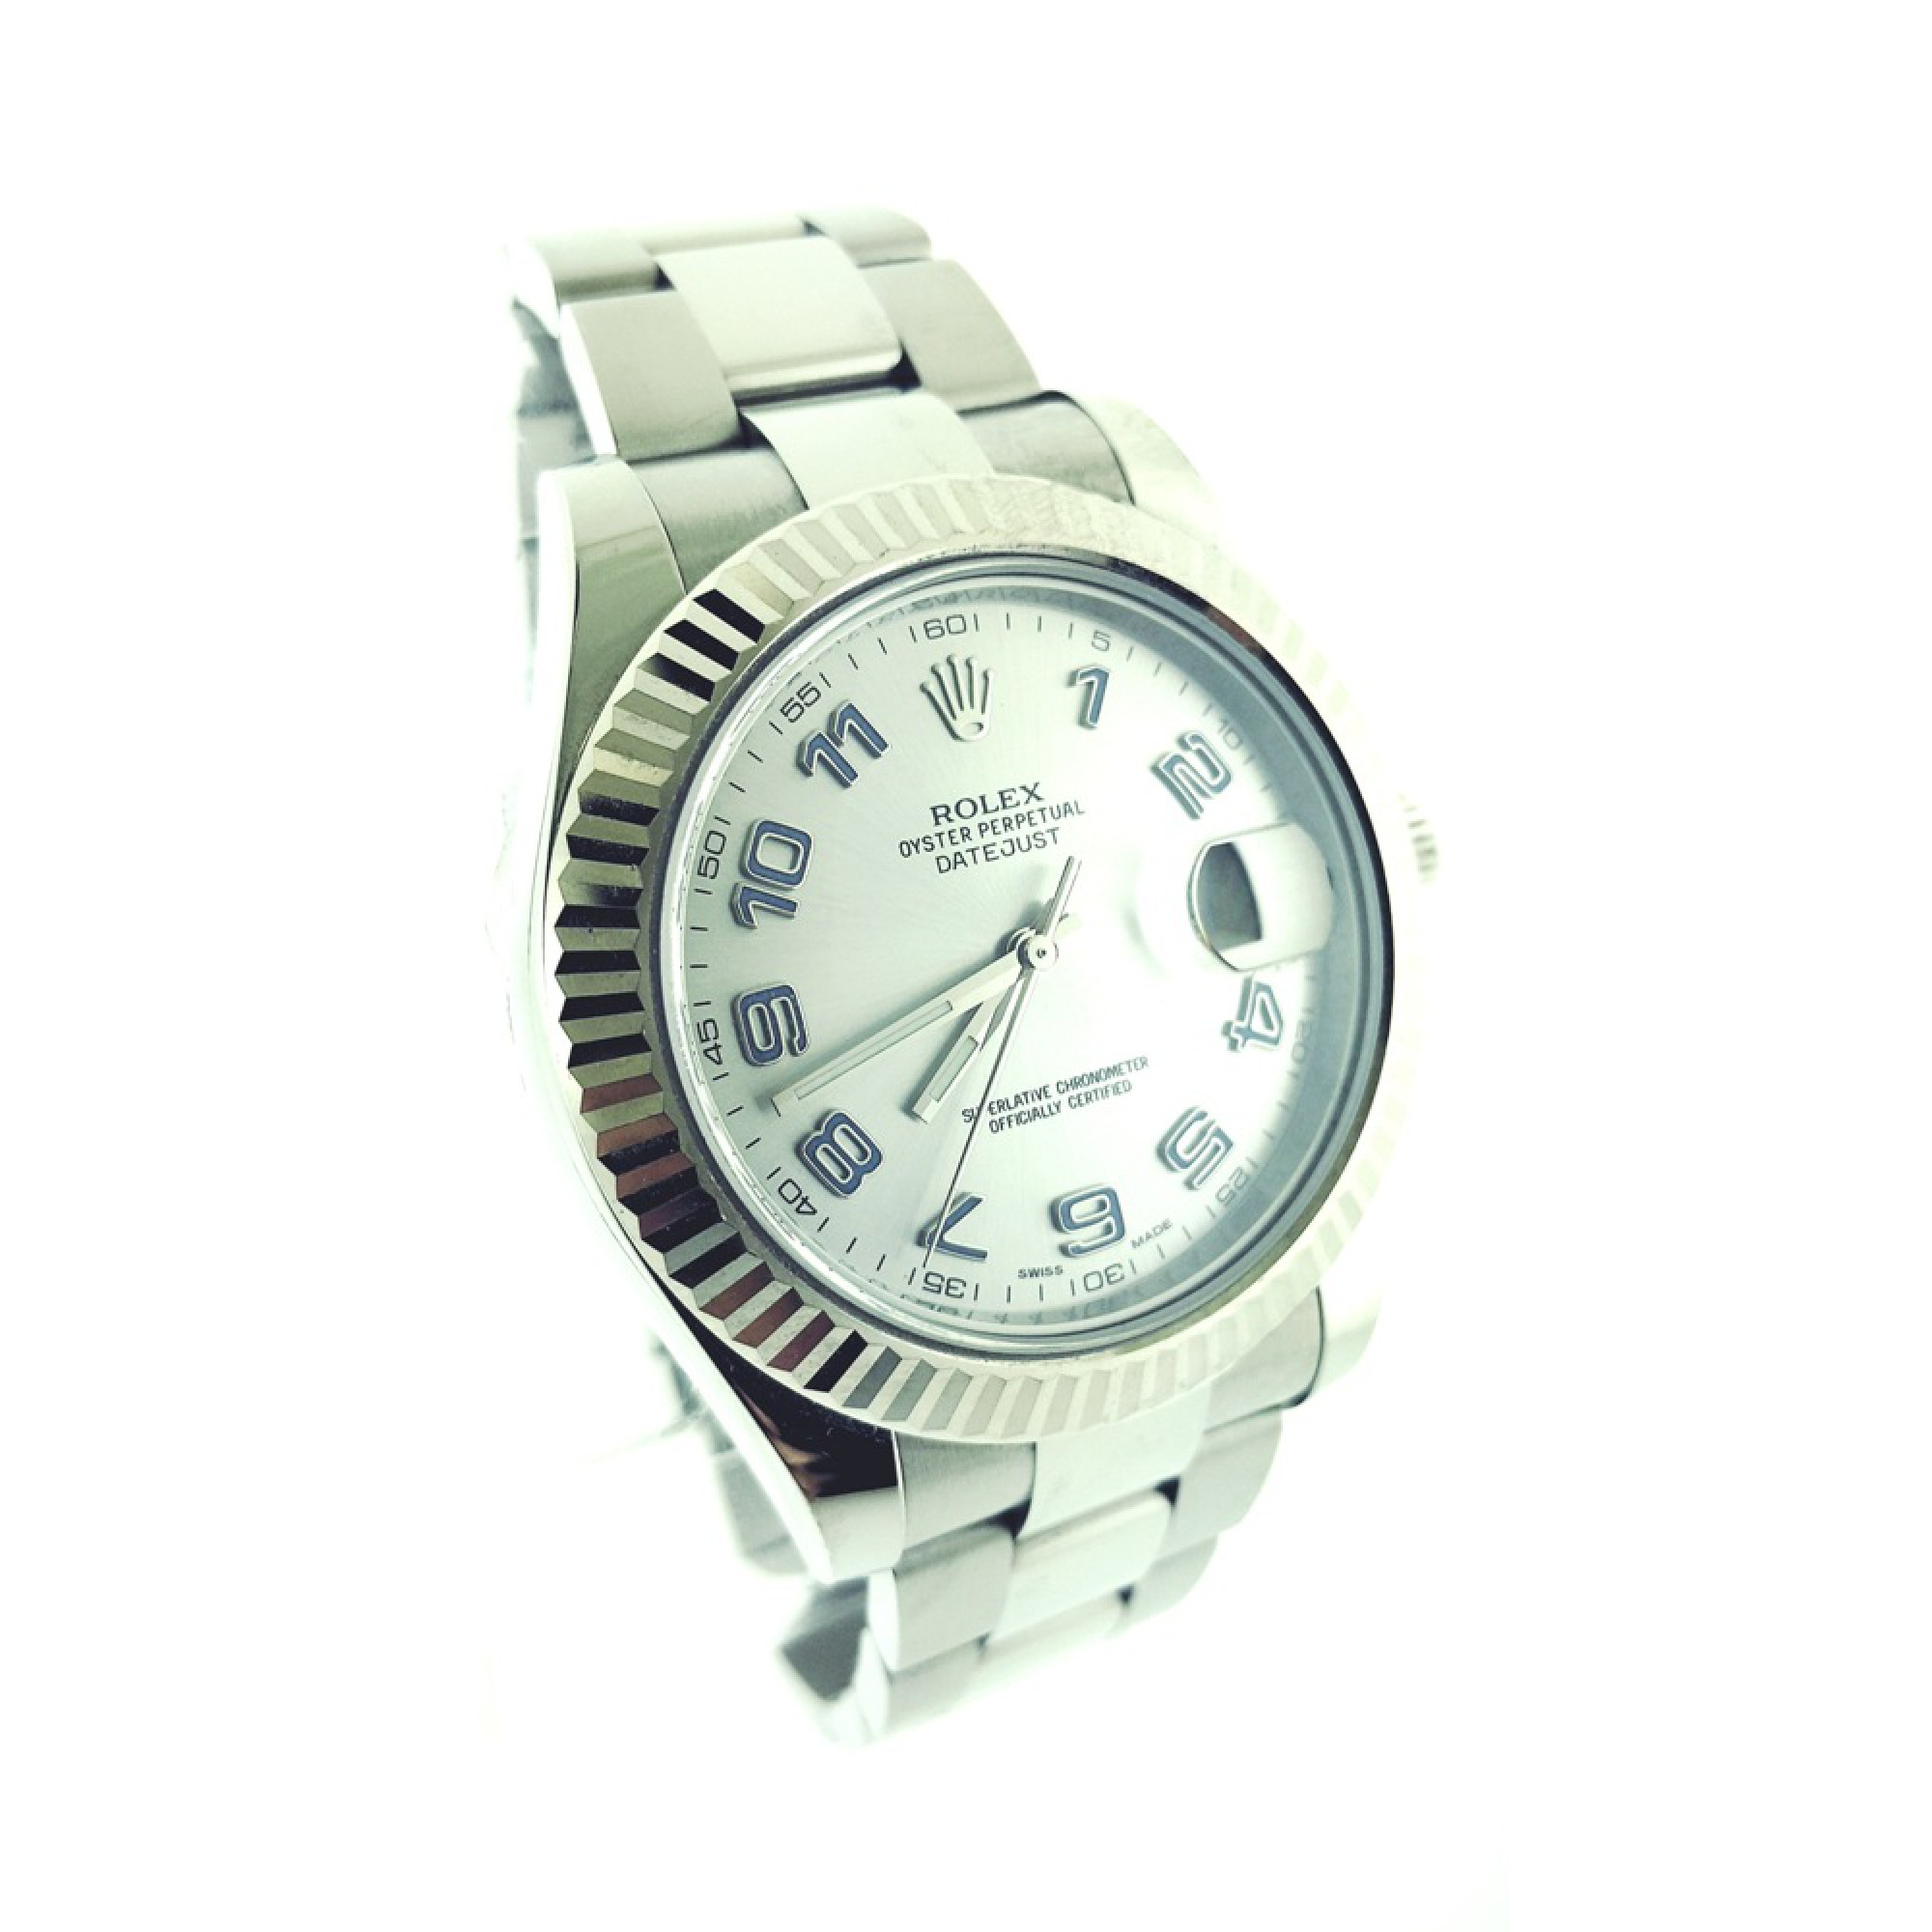 ee5fdc3fe2f Rolex Datejust II Stainless Steel Fluted Bezel with Rhodium Dial 41mm Watch  ...